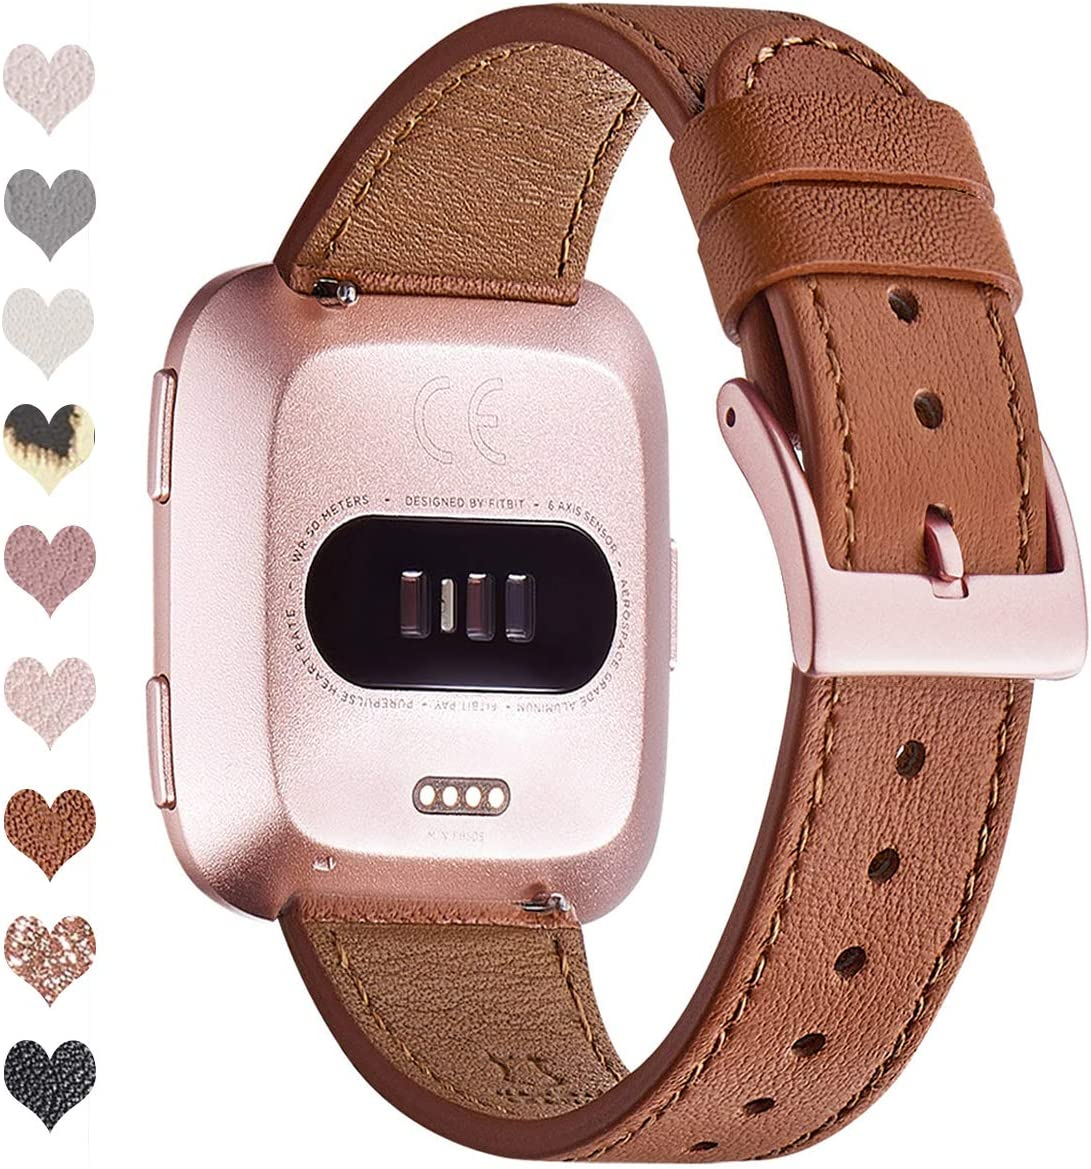 OMIU Bands Compatible with Fitbit Versa/Versa 2/Versa Lite/Versa SE for Women and Men, Classic Soft Leather Strap Replacement Wristband for Fitbit Versa Smart Fitness Watch (Brown/Rose Gold)